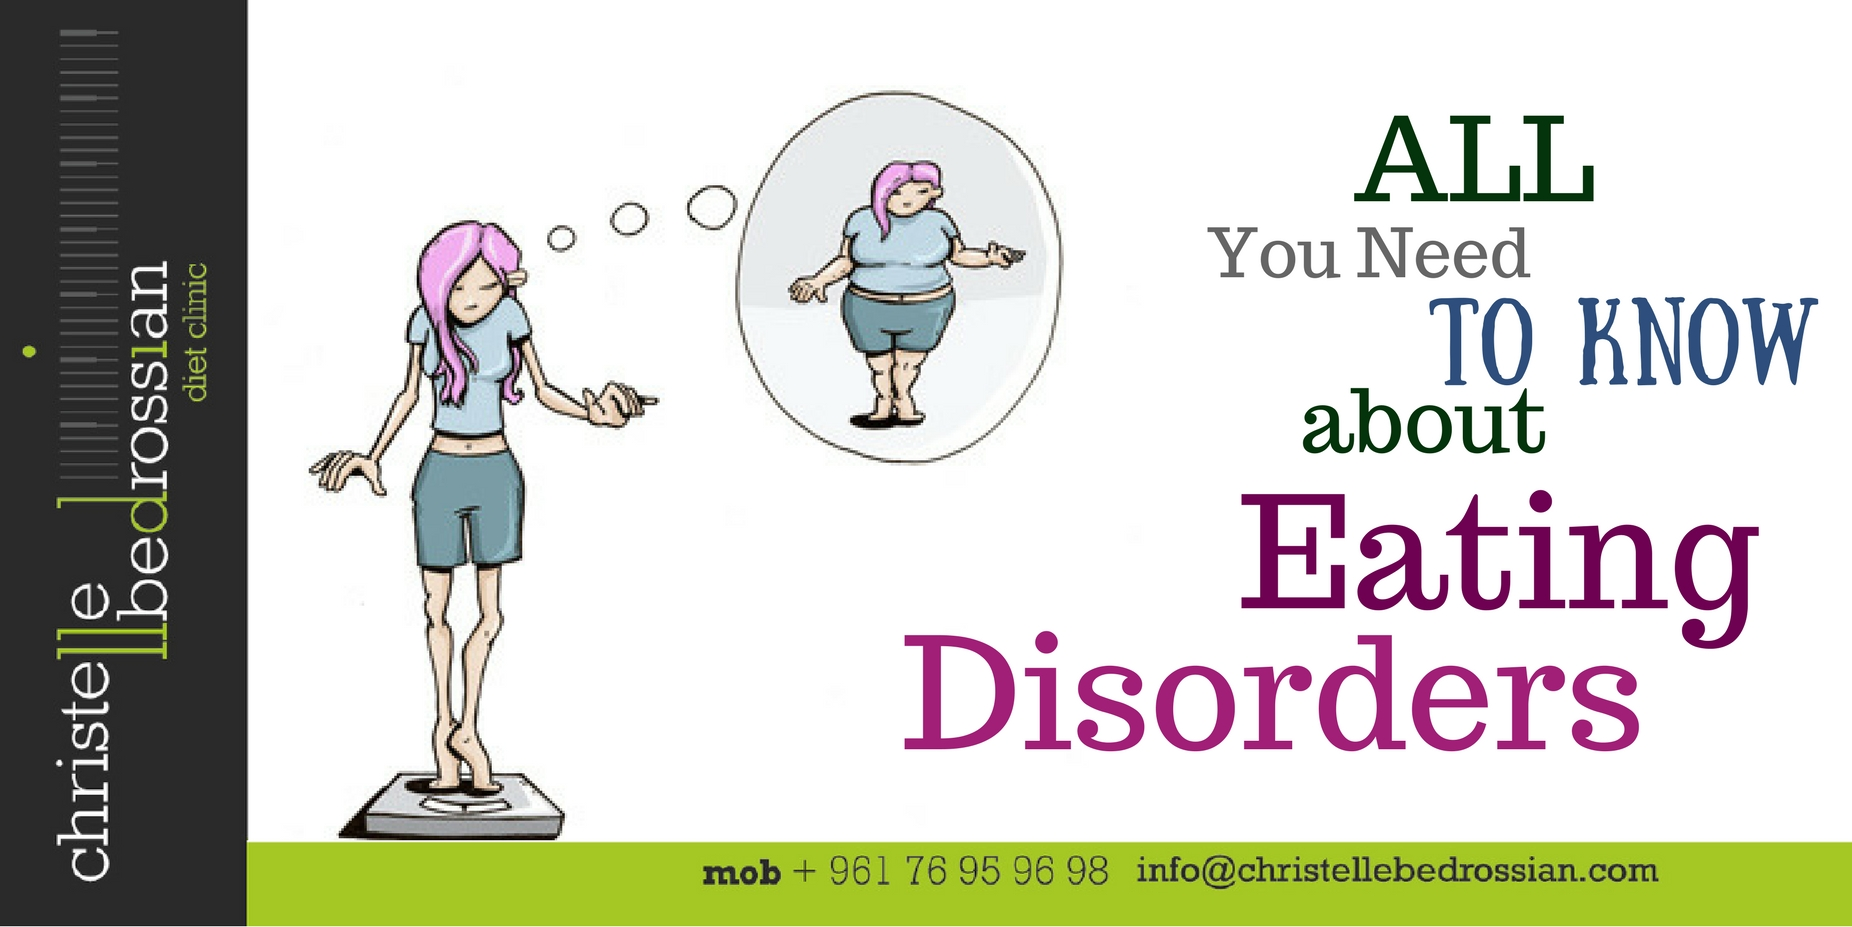 best dietitian lebanon, lebanon, diet, diet clinic, eating disorders, anorexia nervosa, bulimia nervosa, binge eating disorder